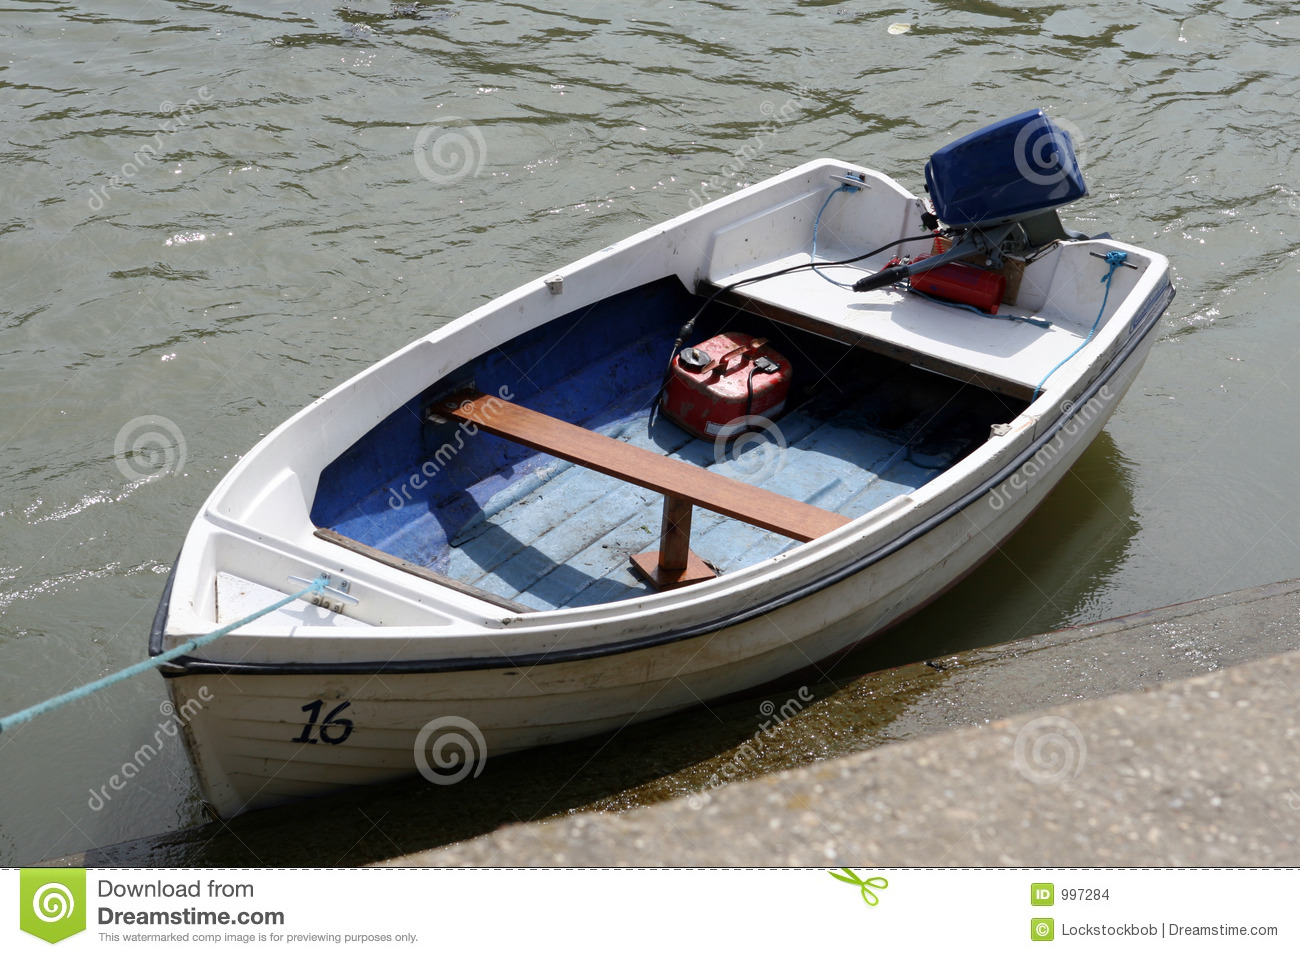 Small Dinghy Boat On A Tidal Sea River Stock Images - Image: 997284